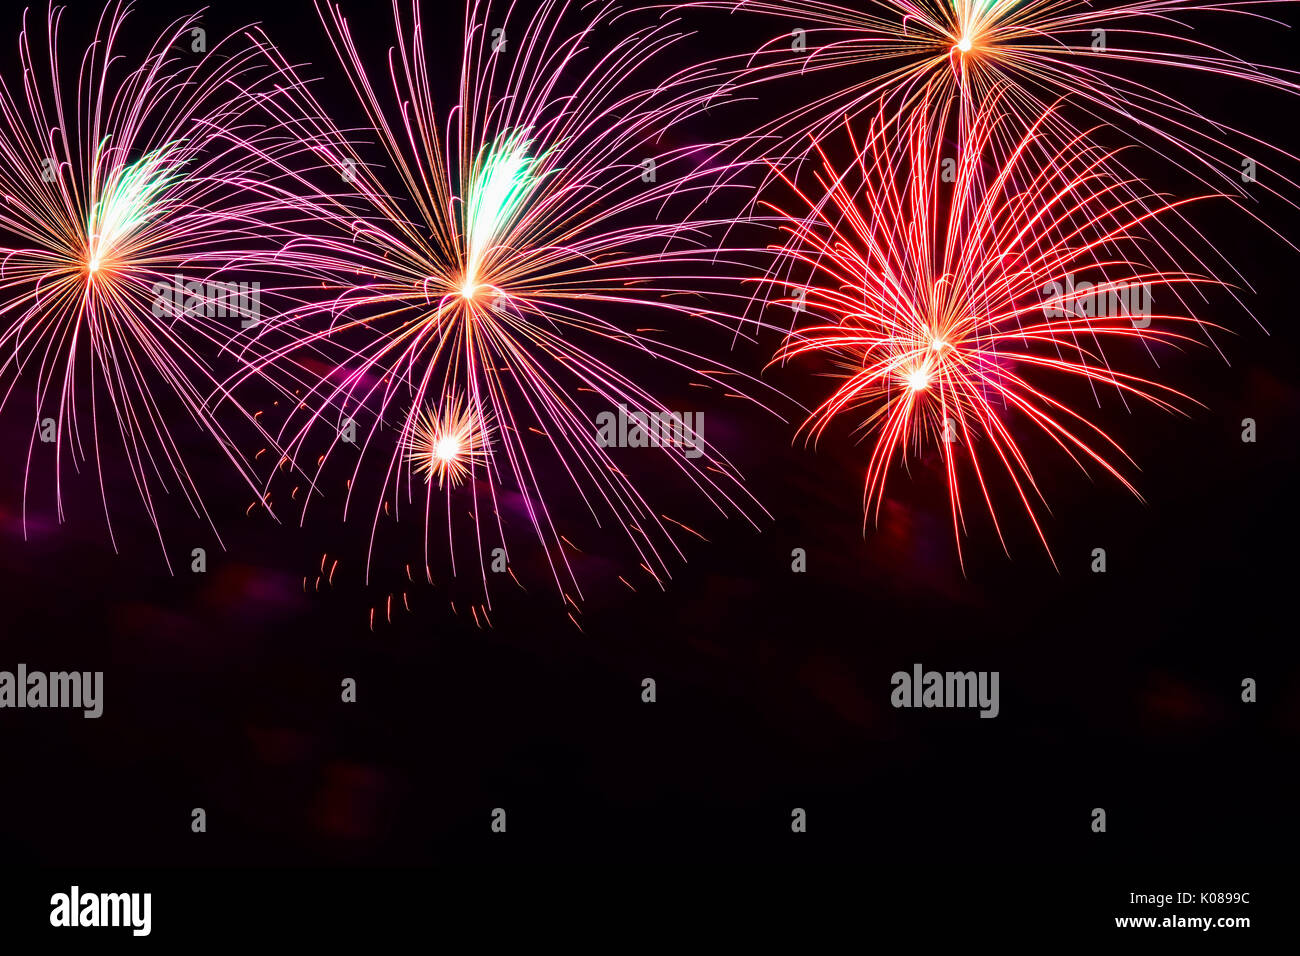 Fireworks Space Text Stock Photos & Fireworks Space Text Stock ...